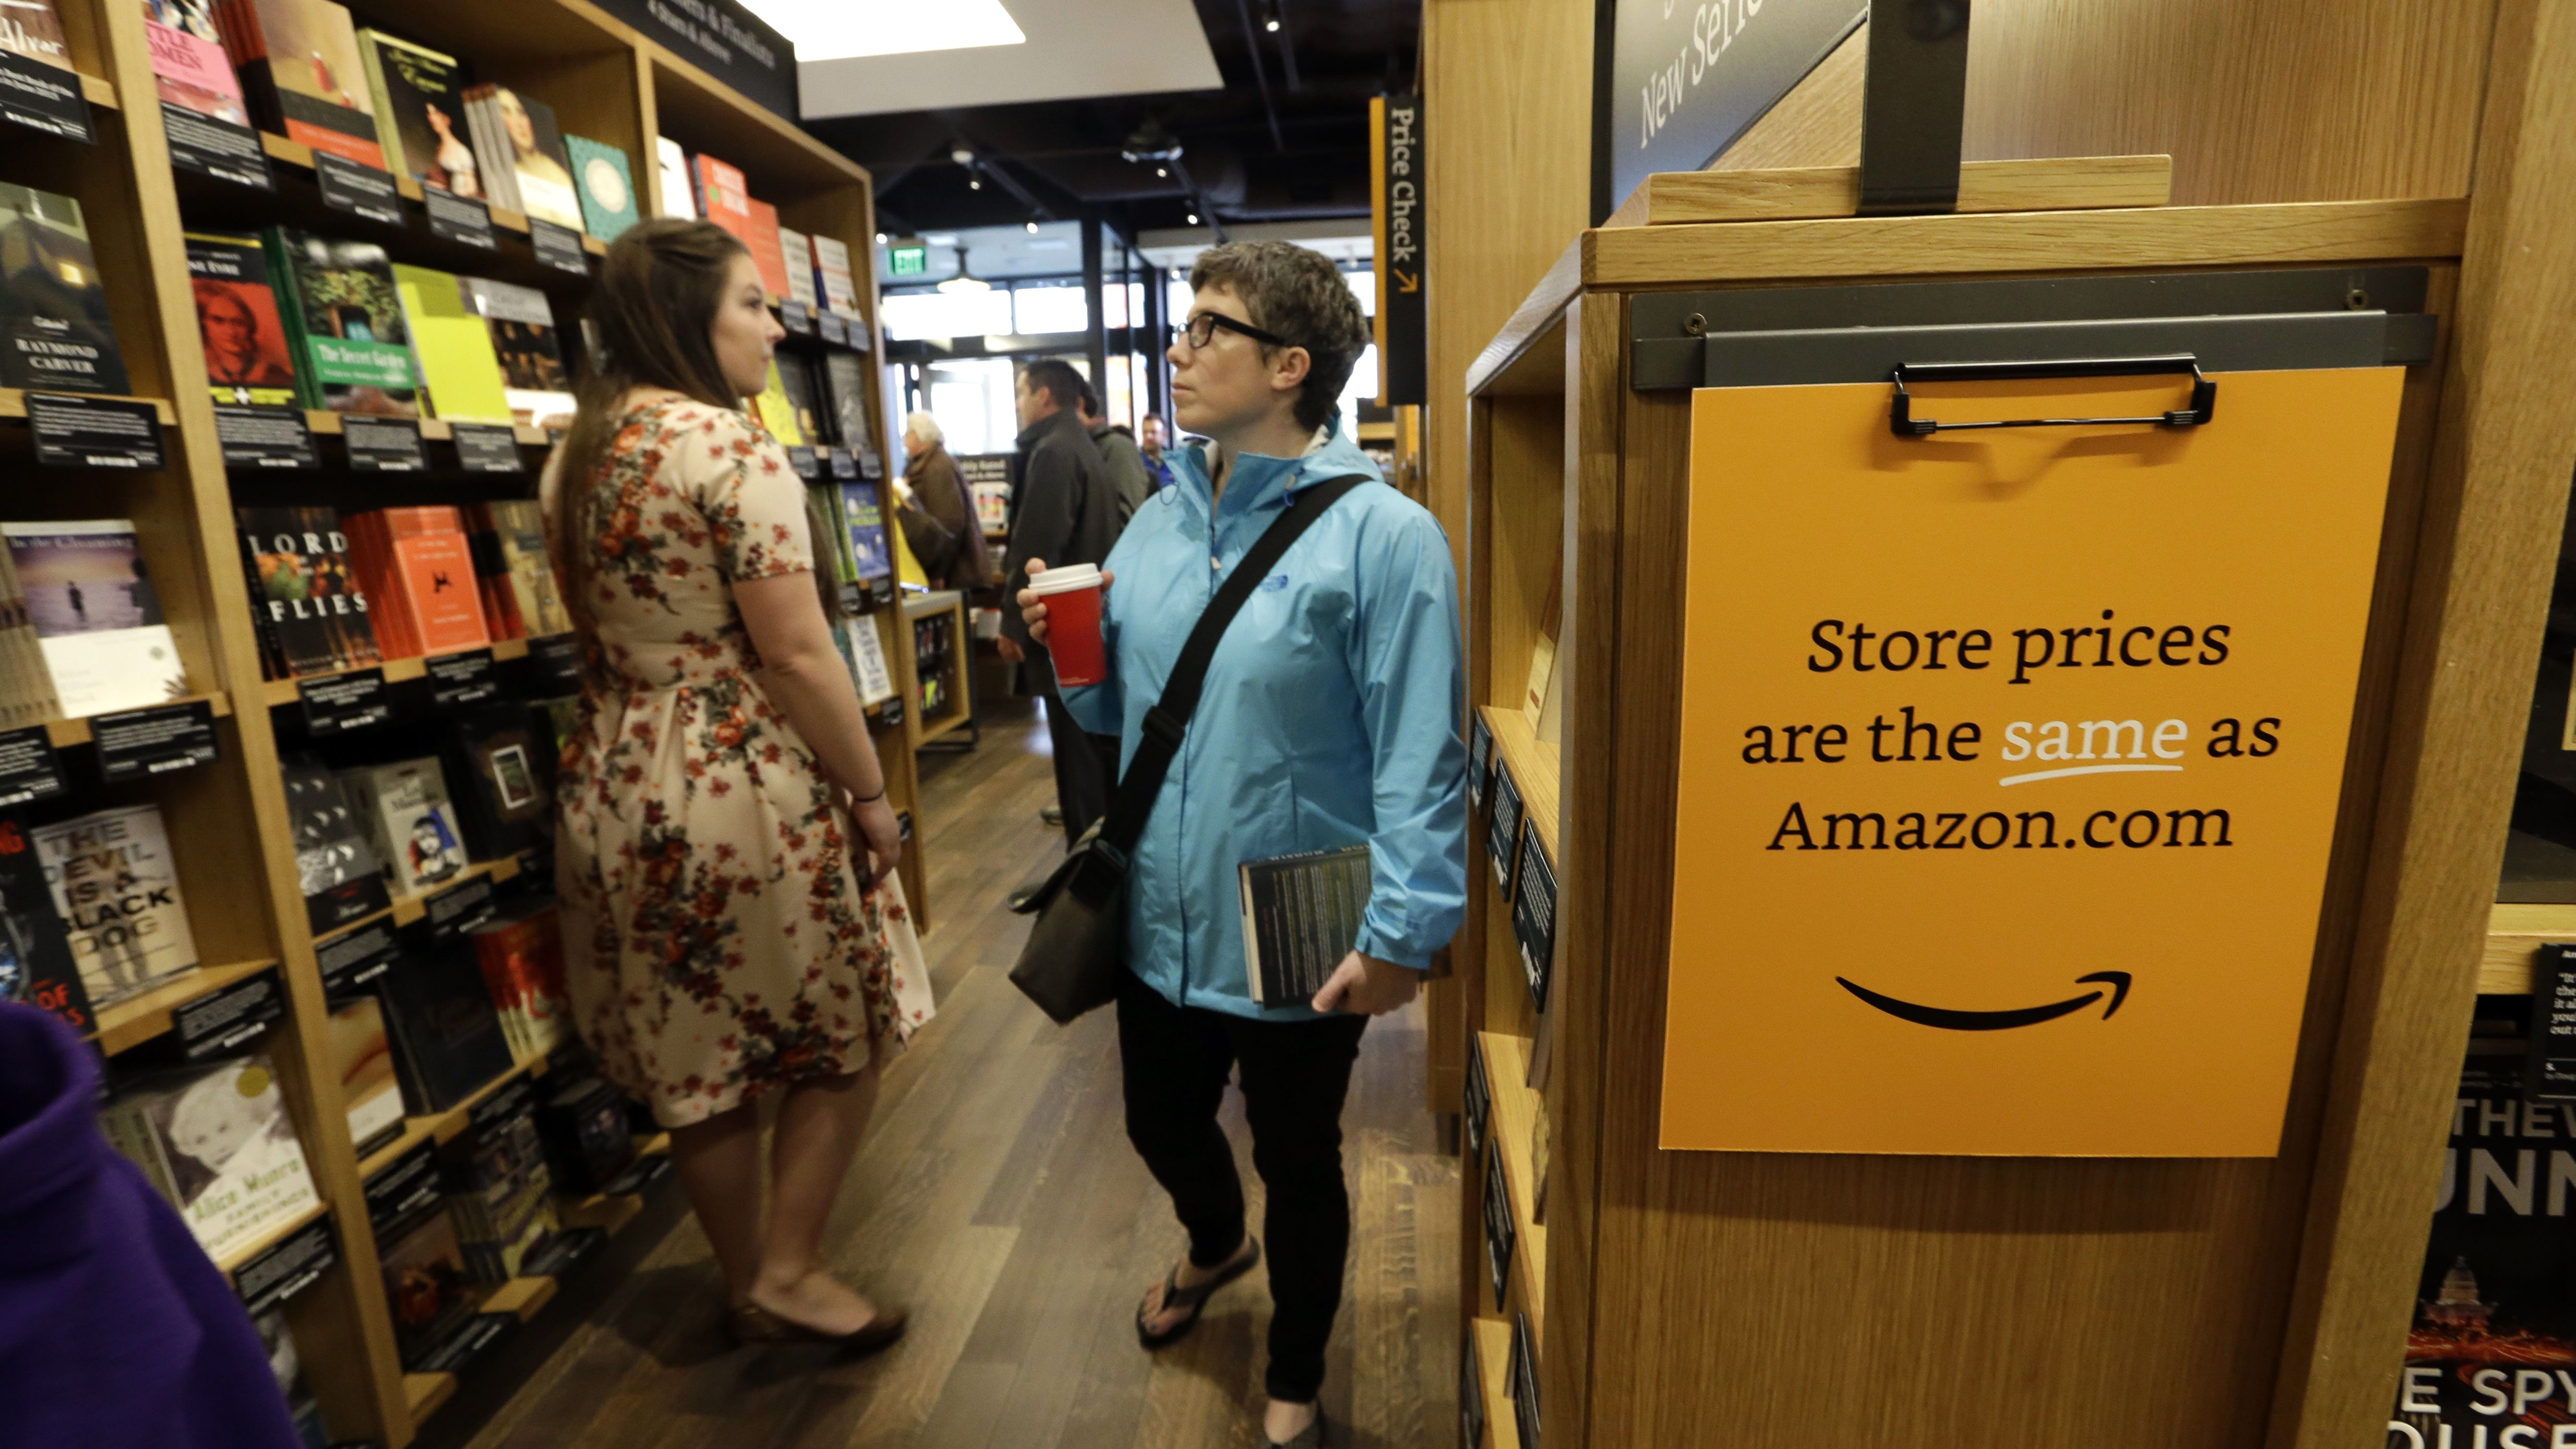 Customers browse aisles at the opening day for Amazon Books, the first brick-and-mortar retail store for online retail giant Amazon, Tuesday, Nov. 3, 2015, in Seattle. The company says the Seattle store, coming two decades after it began selling books over the Internet, will be a physical extension of its website, combining the benefits of online and traditional book shopping. (AP Photo/Elaine Thompson)